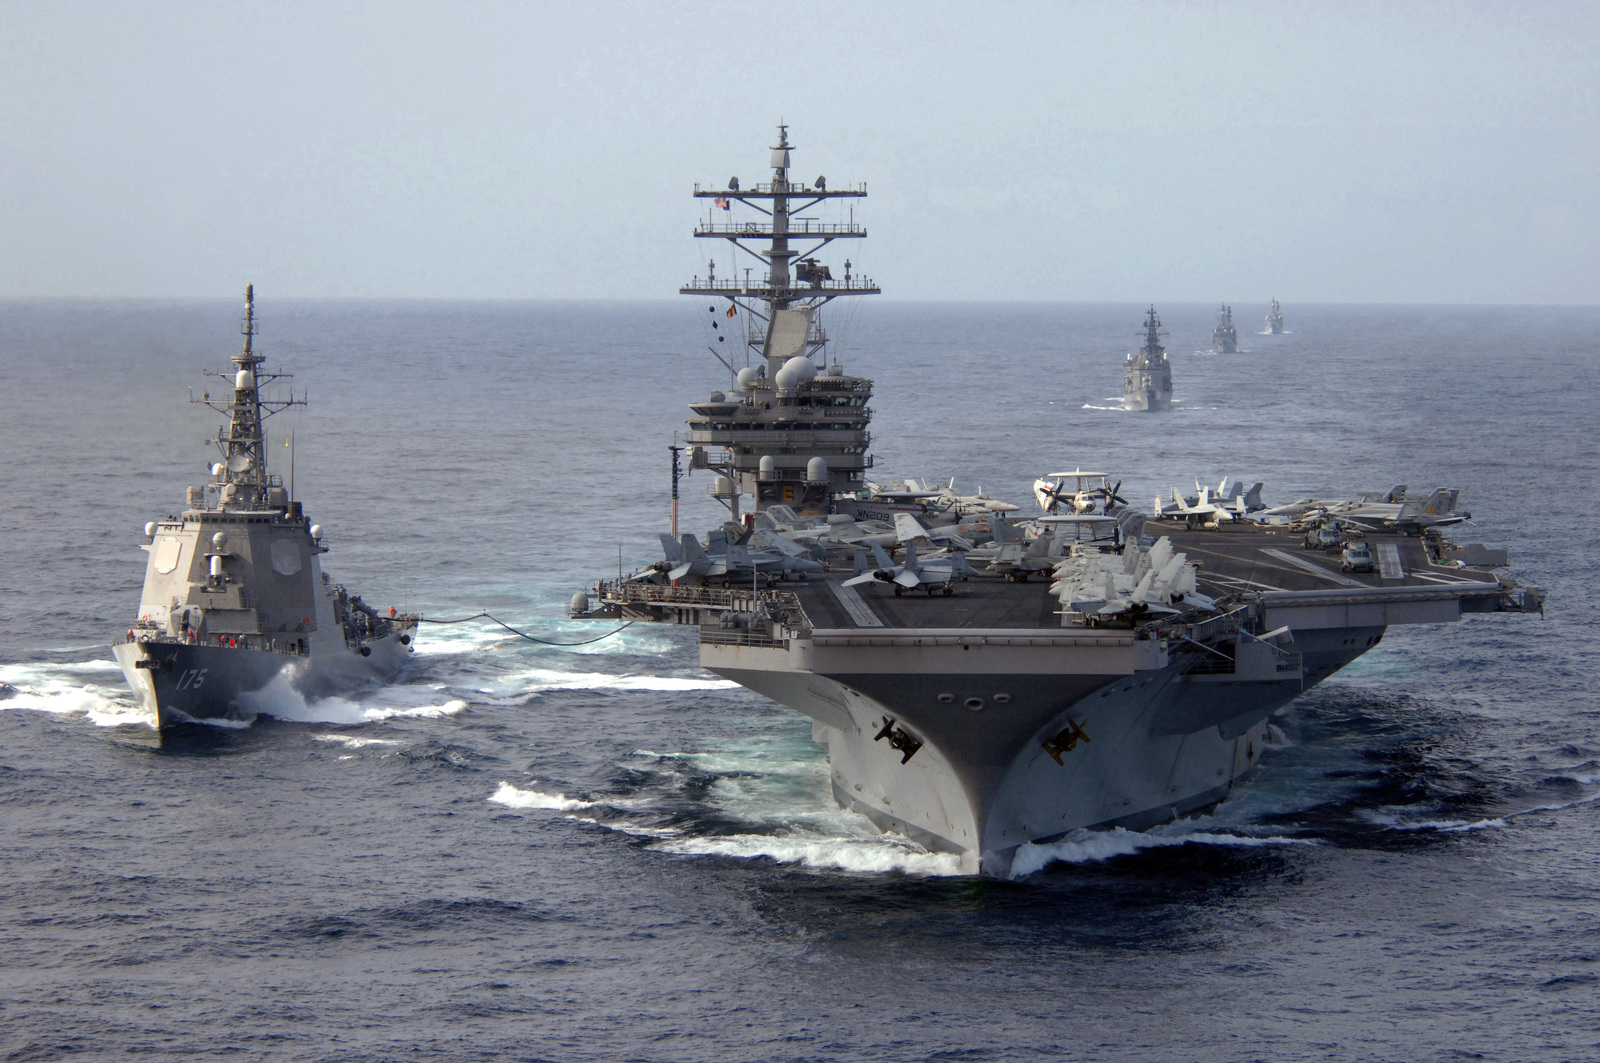 The U.S. Navy Nimitz Class Aircraft Carrier USS RONALD REAGAN (CVN 76) (right) connects to the Japanese Maritime Self Defense Force (JMSDF) Kongo Class Destroyer MYOKO (DDG 175) during a refueling at sea evolution somewhere in the Pacific Ocean, Mar. 17, 2007.  The Ronald Reagan Carrier Strike Group (RRCSG) is on a surge deployment in support of U.S. Military operations in the Western Pacific.  (U.S. Navy photo by CHIEF Mass Communication SPECIALIST Spike Call) (Released)